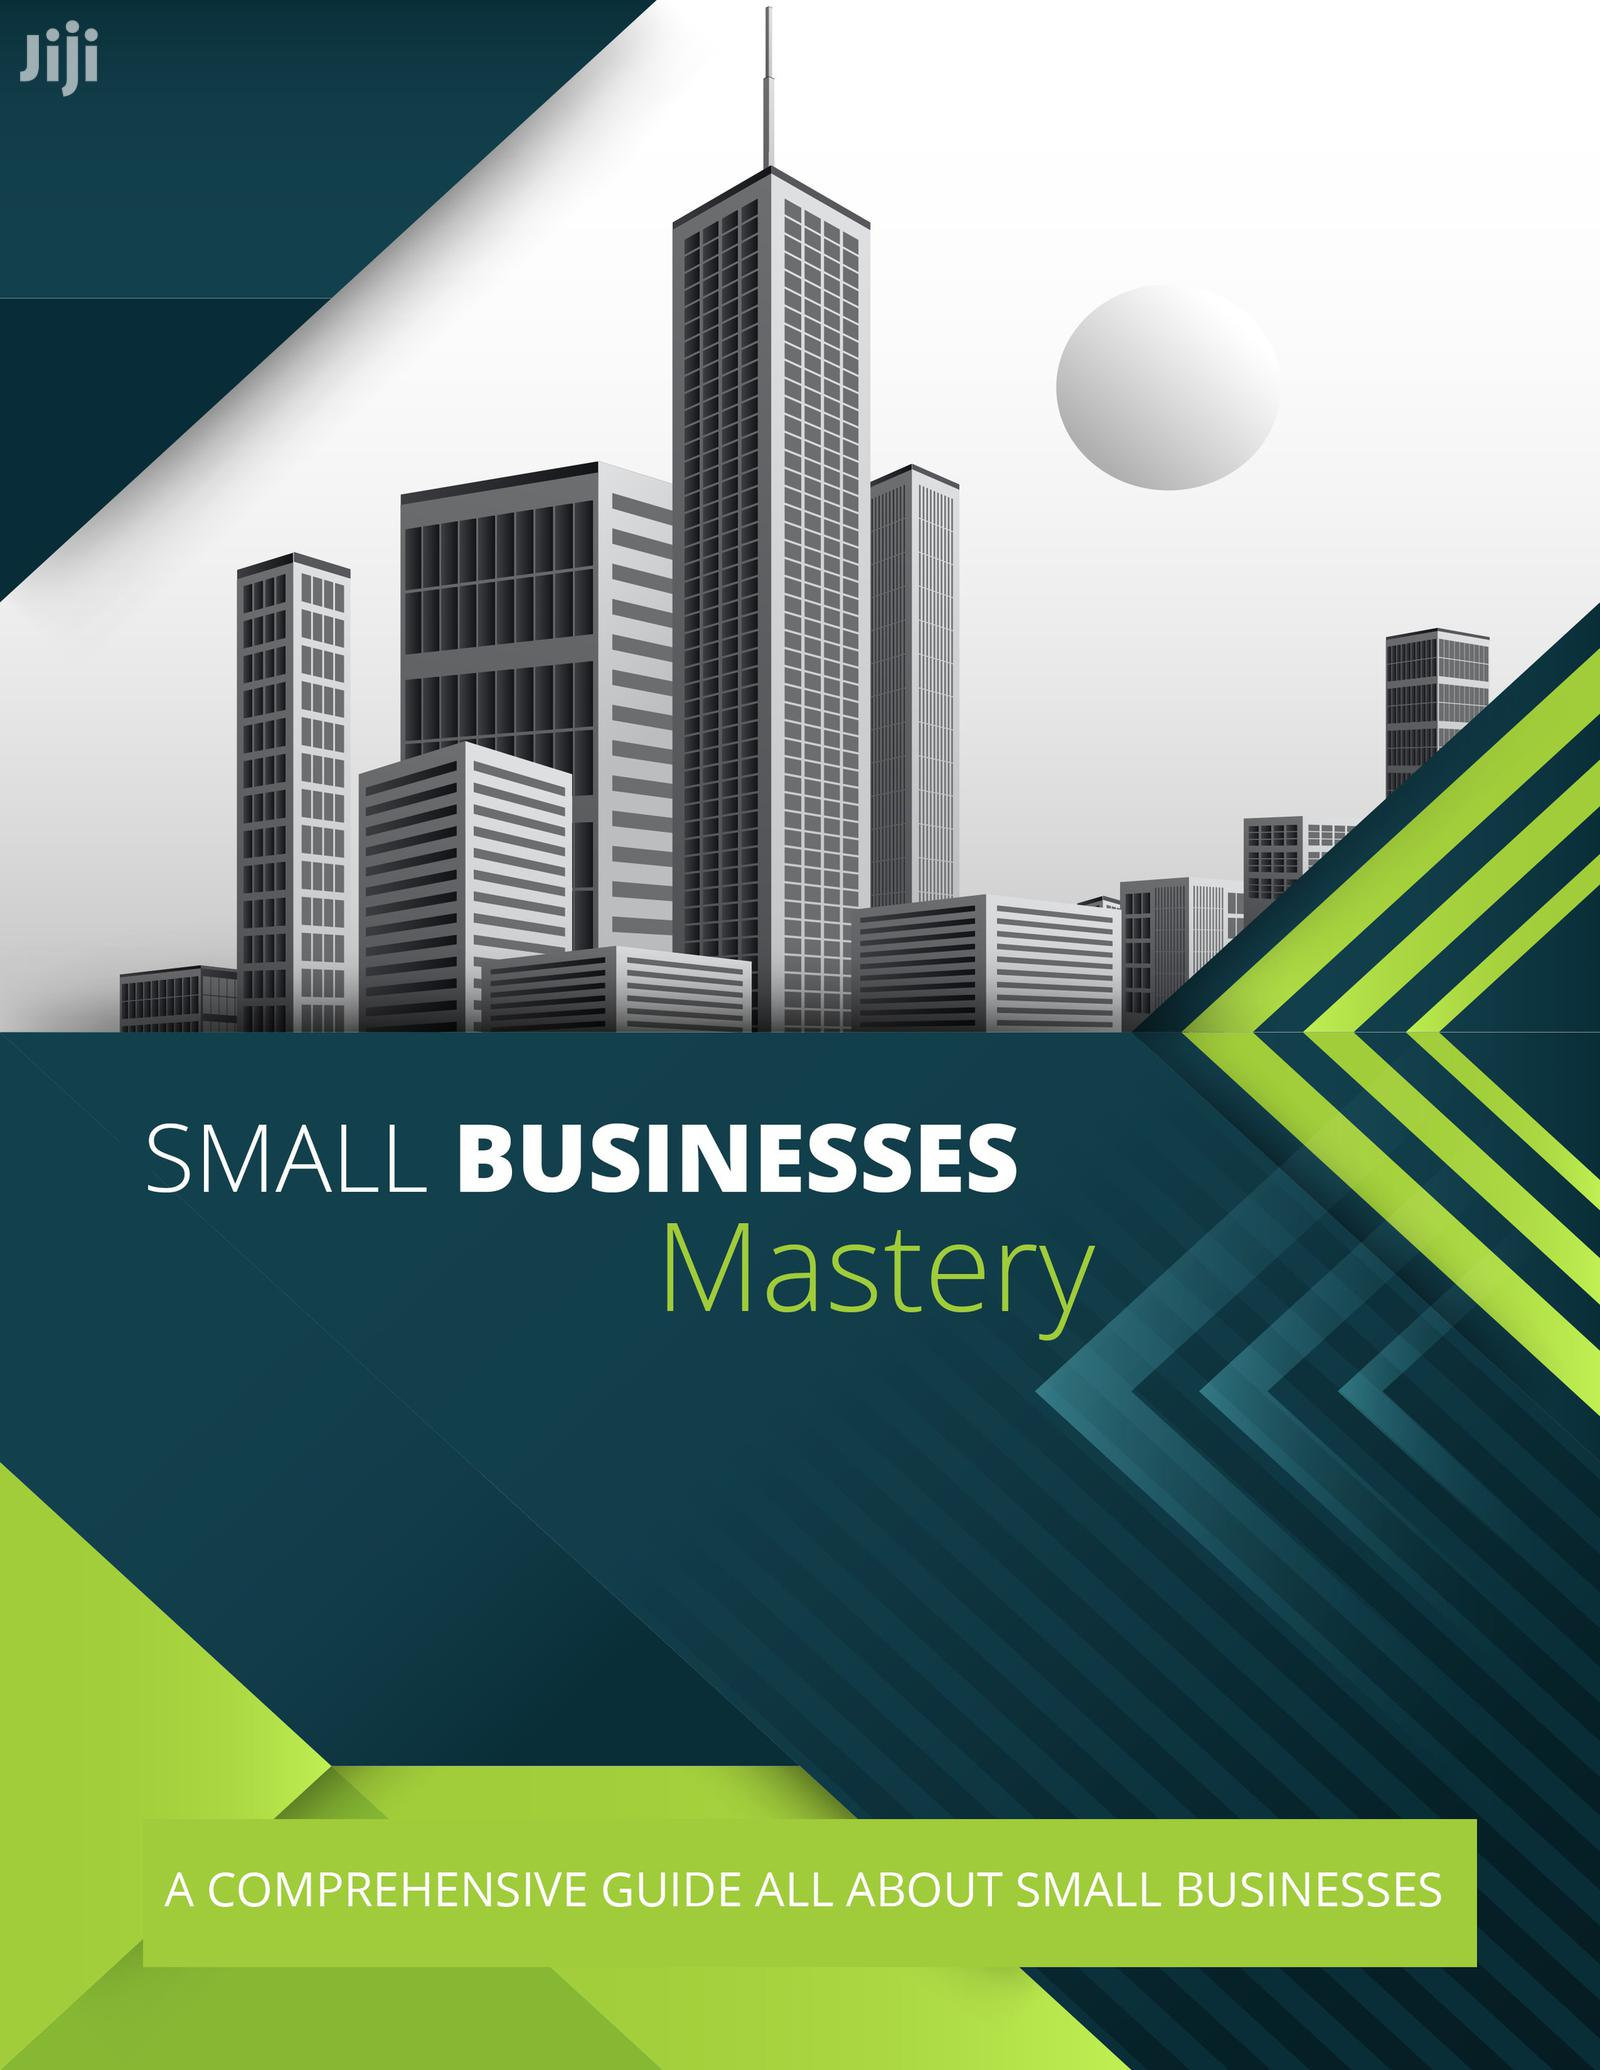 Small Businesses Mastery